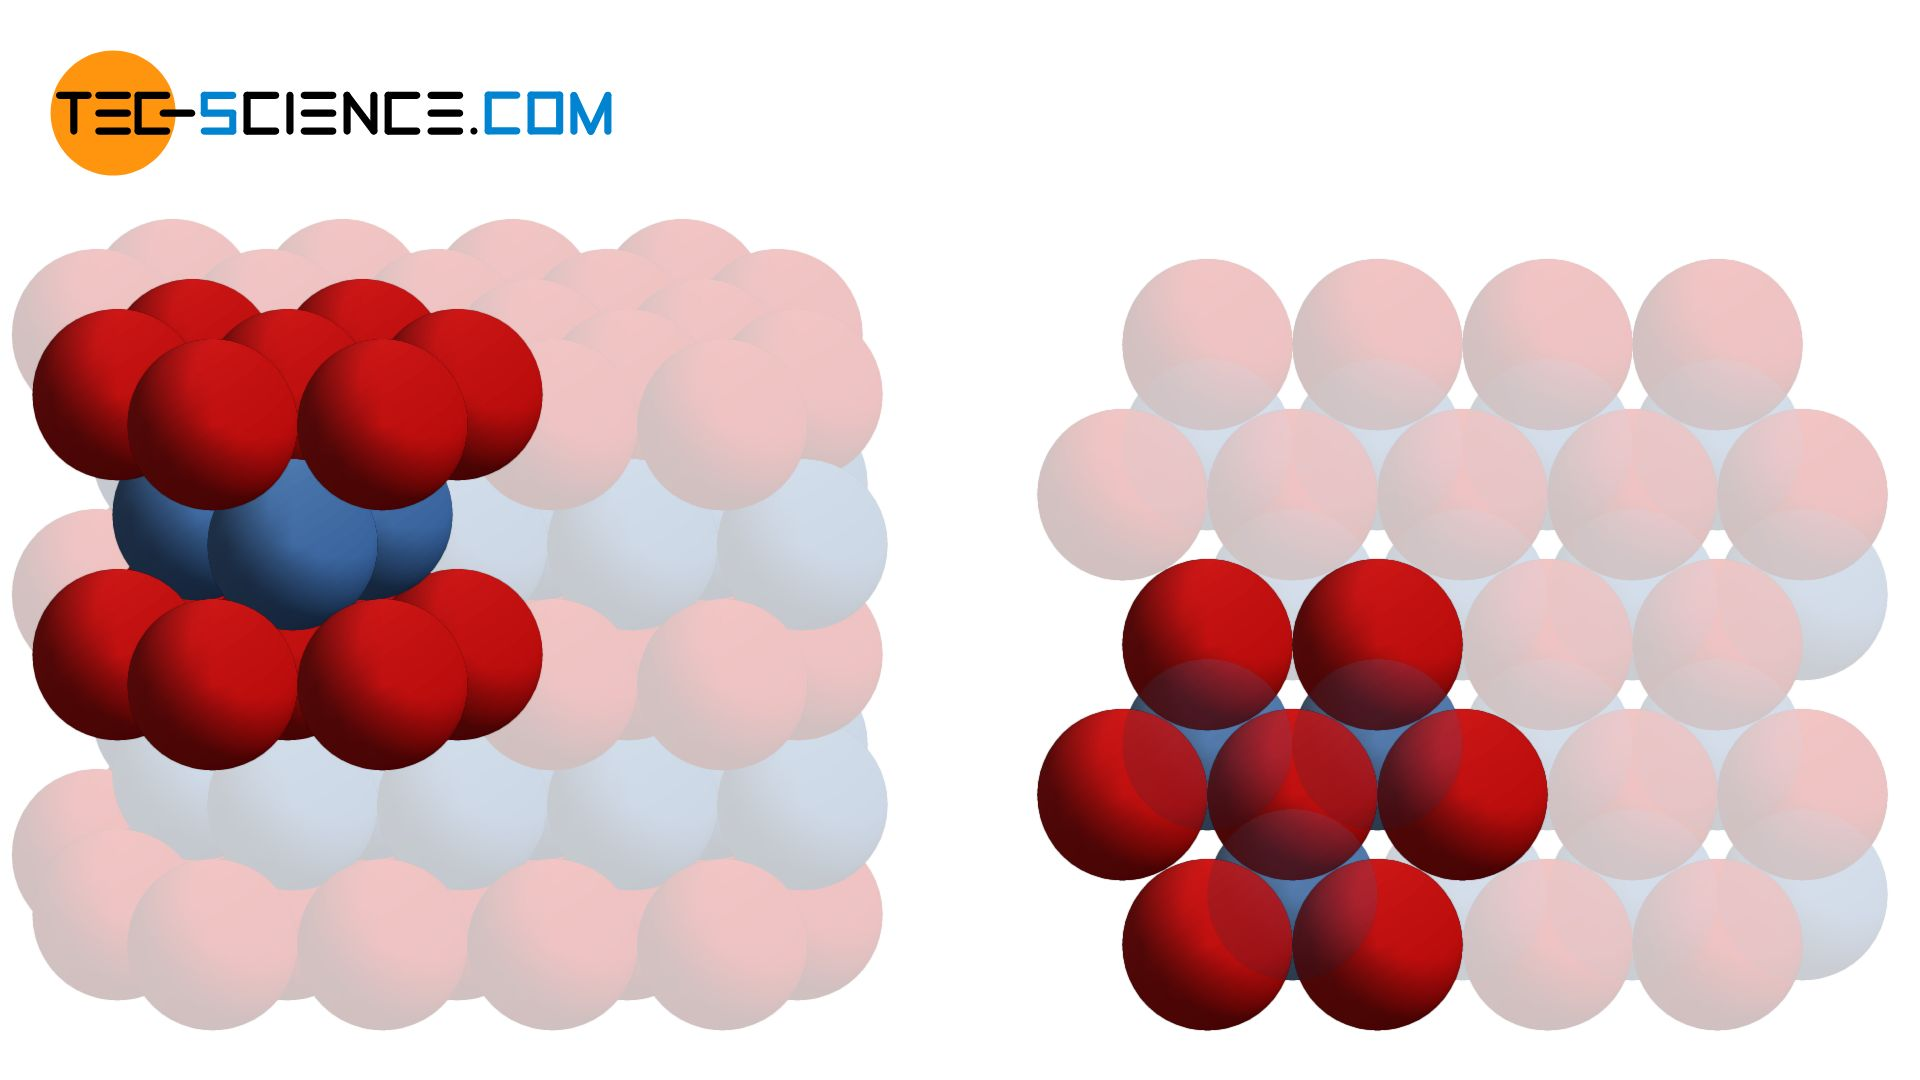 Hexagonal closest packed (hcp) lattice structure (unit cell)